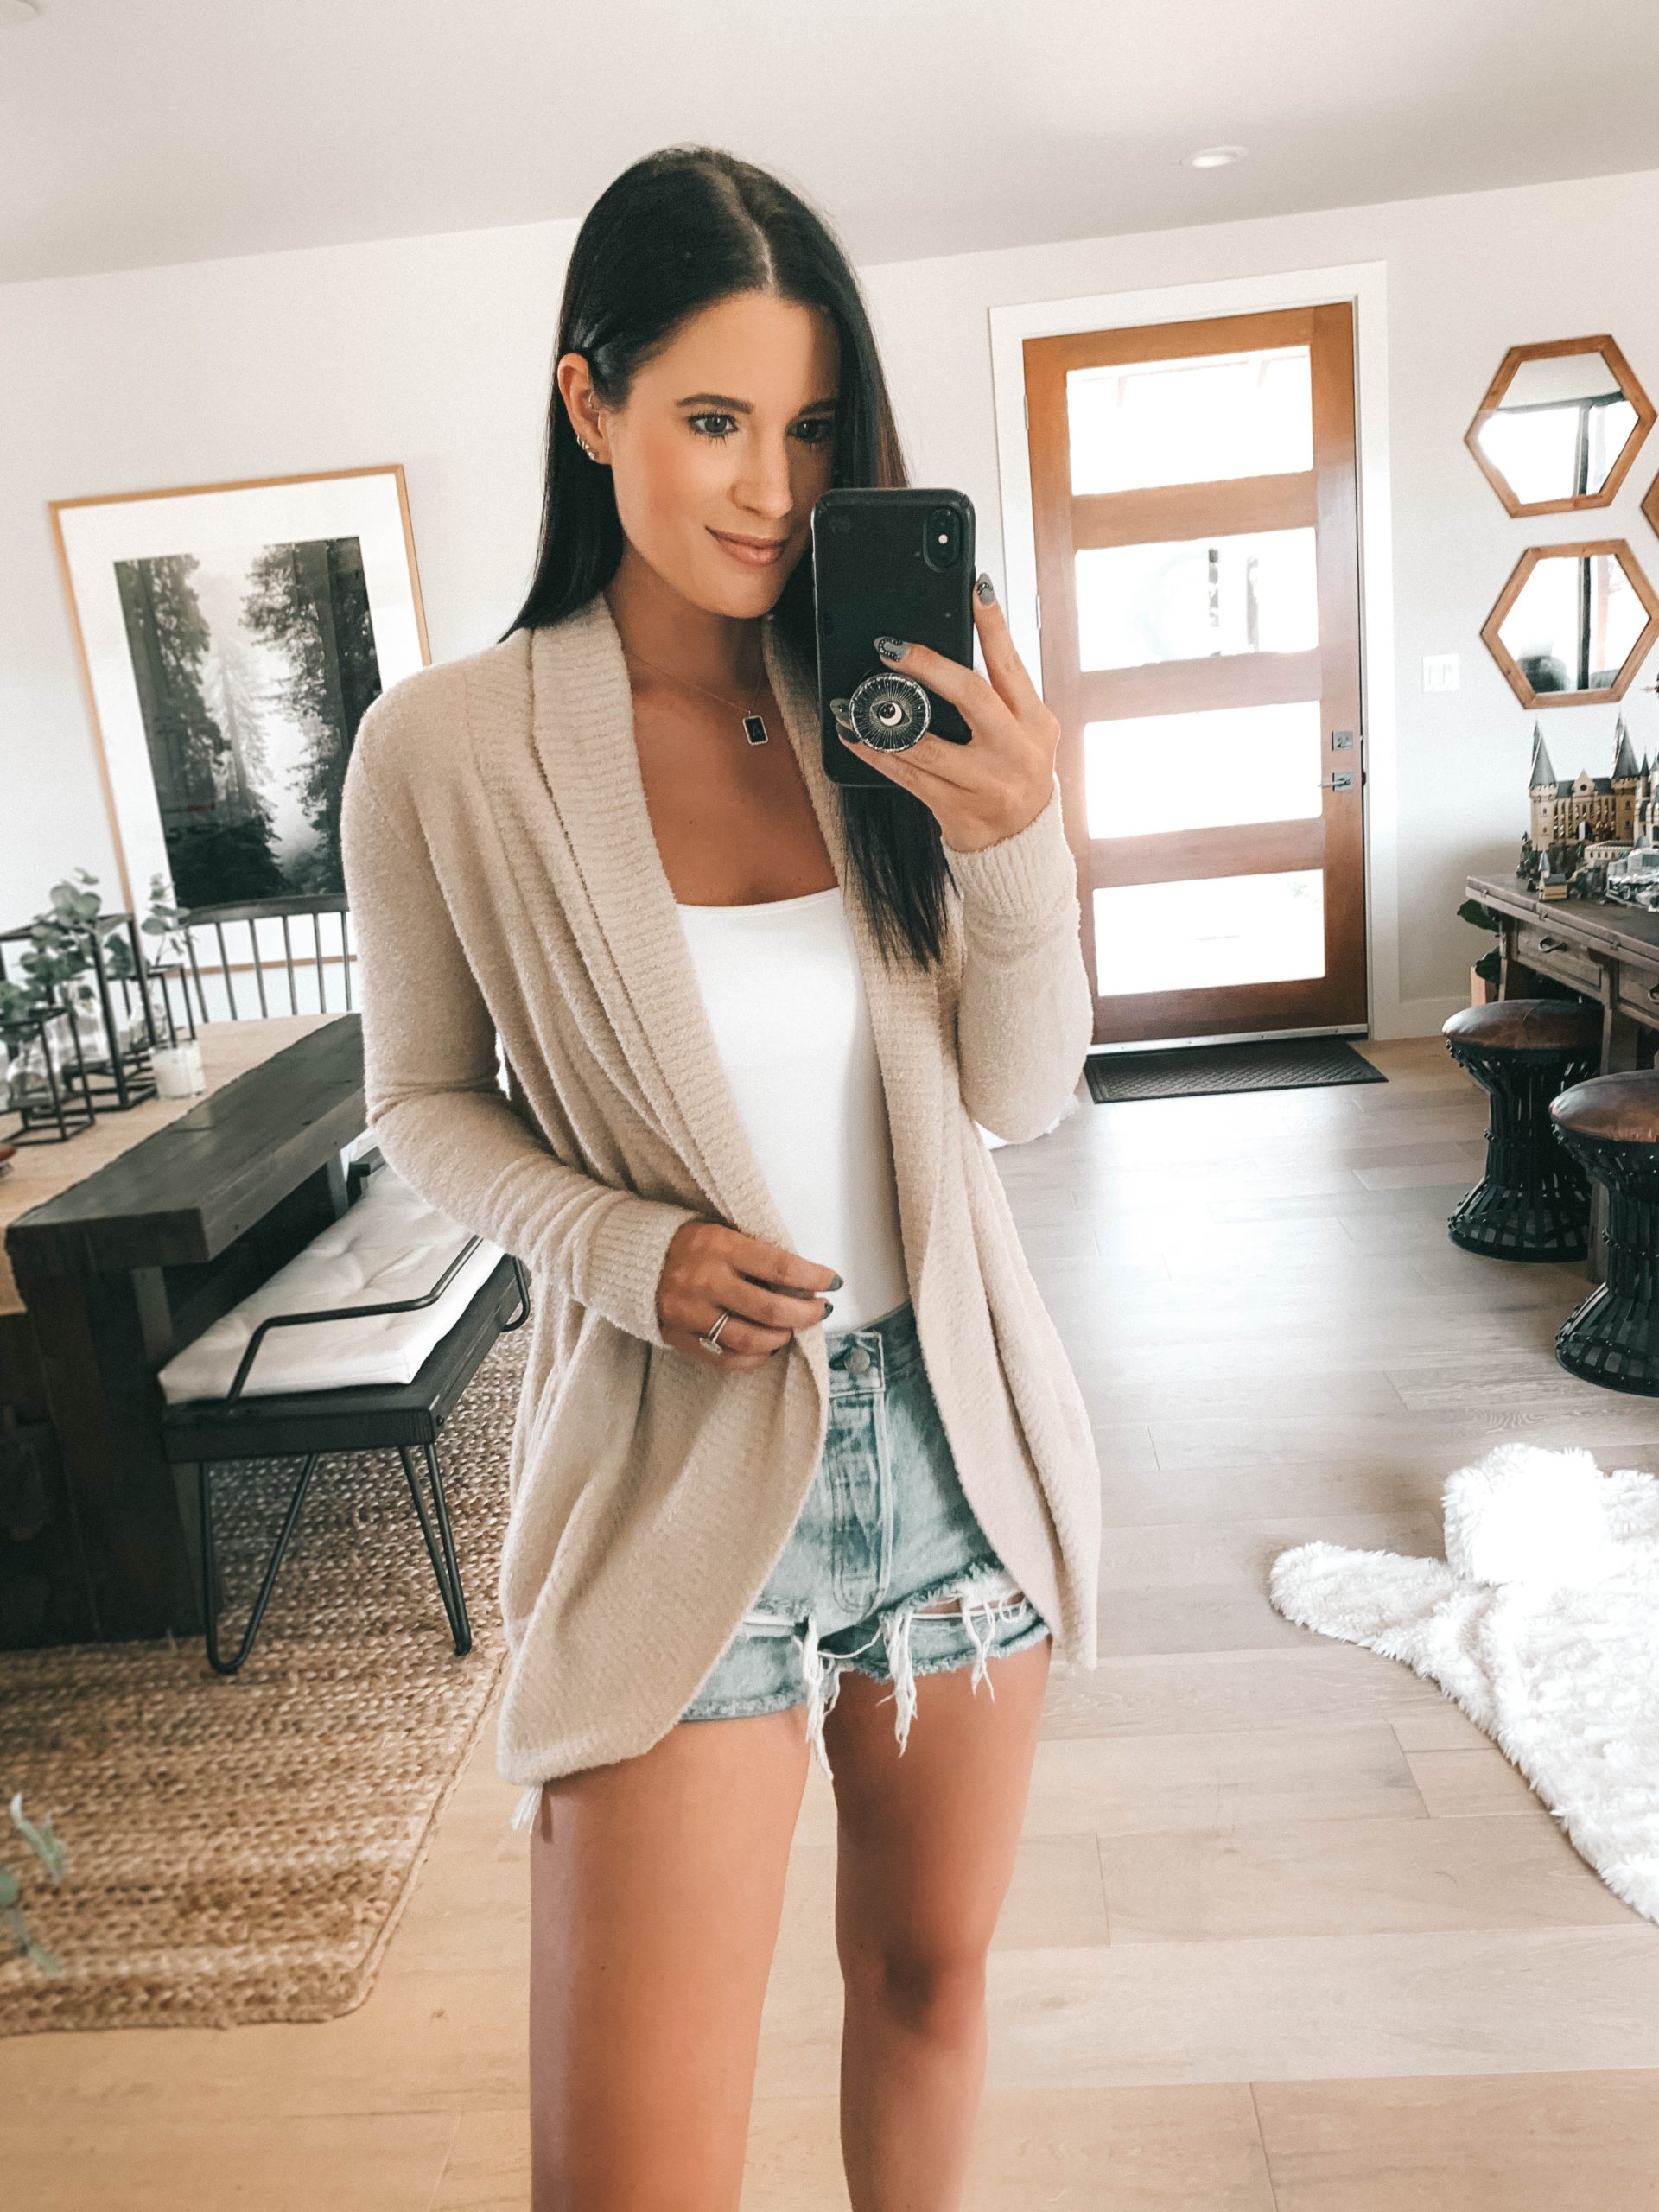 Nordstrom Anniversary Sale by popular Austin fashion blog, Dressed to Kill: image of a woman wearing Nordstrom CozyChic Lite® Circle Cardigan BAREFOOT DREAMS®, Nordstrom Pax Ripped High Waist Denim Shorts BDG URBAN OUTFITTERS, and Nordstrom Cami Bodysuit BP..